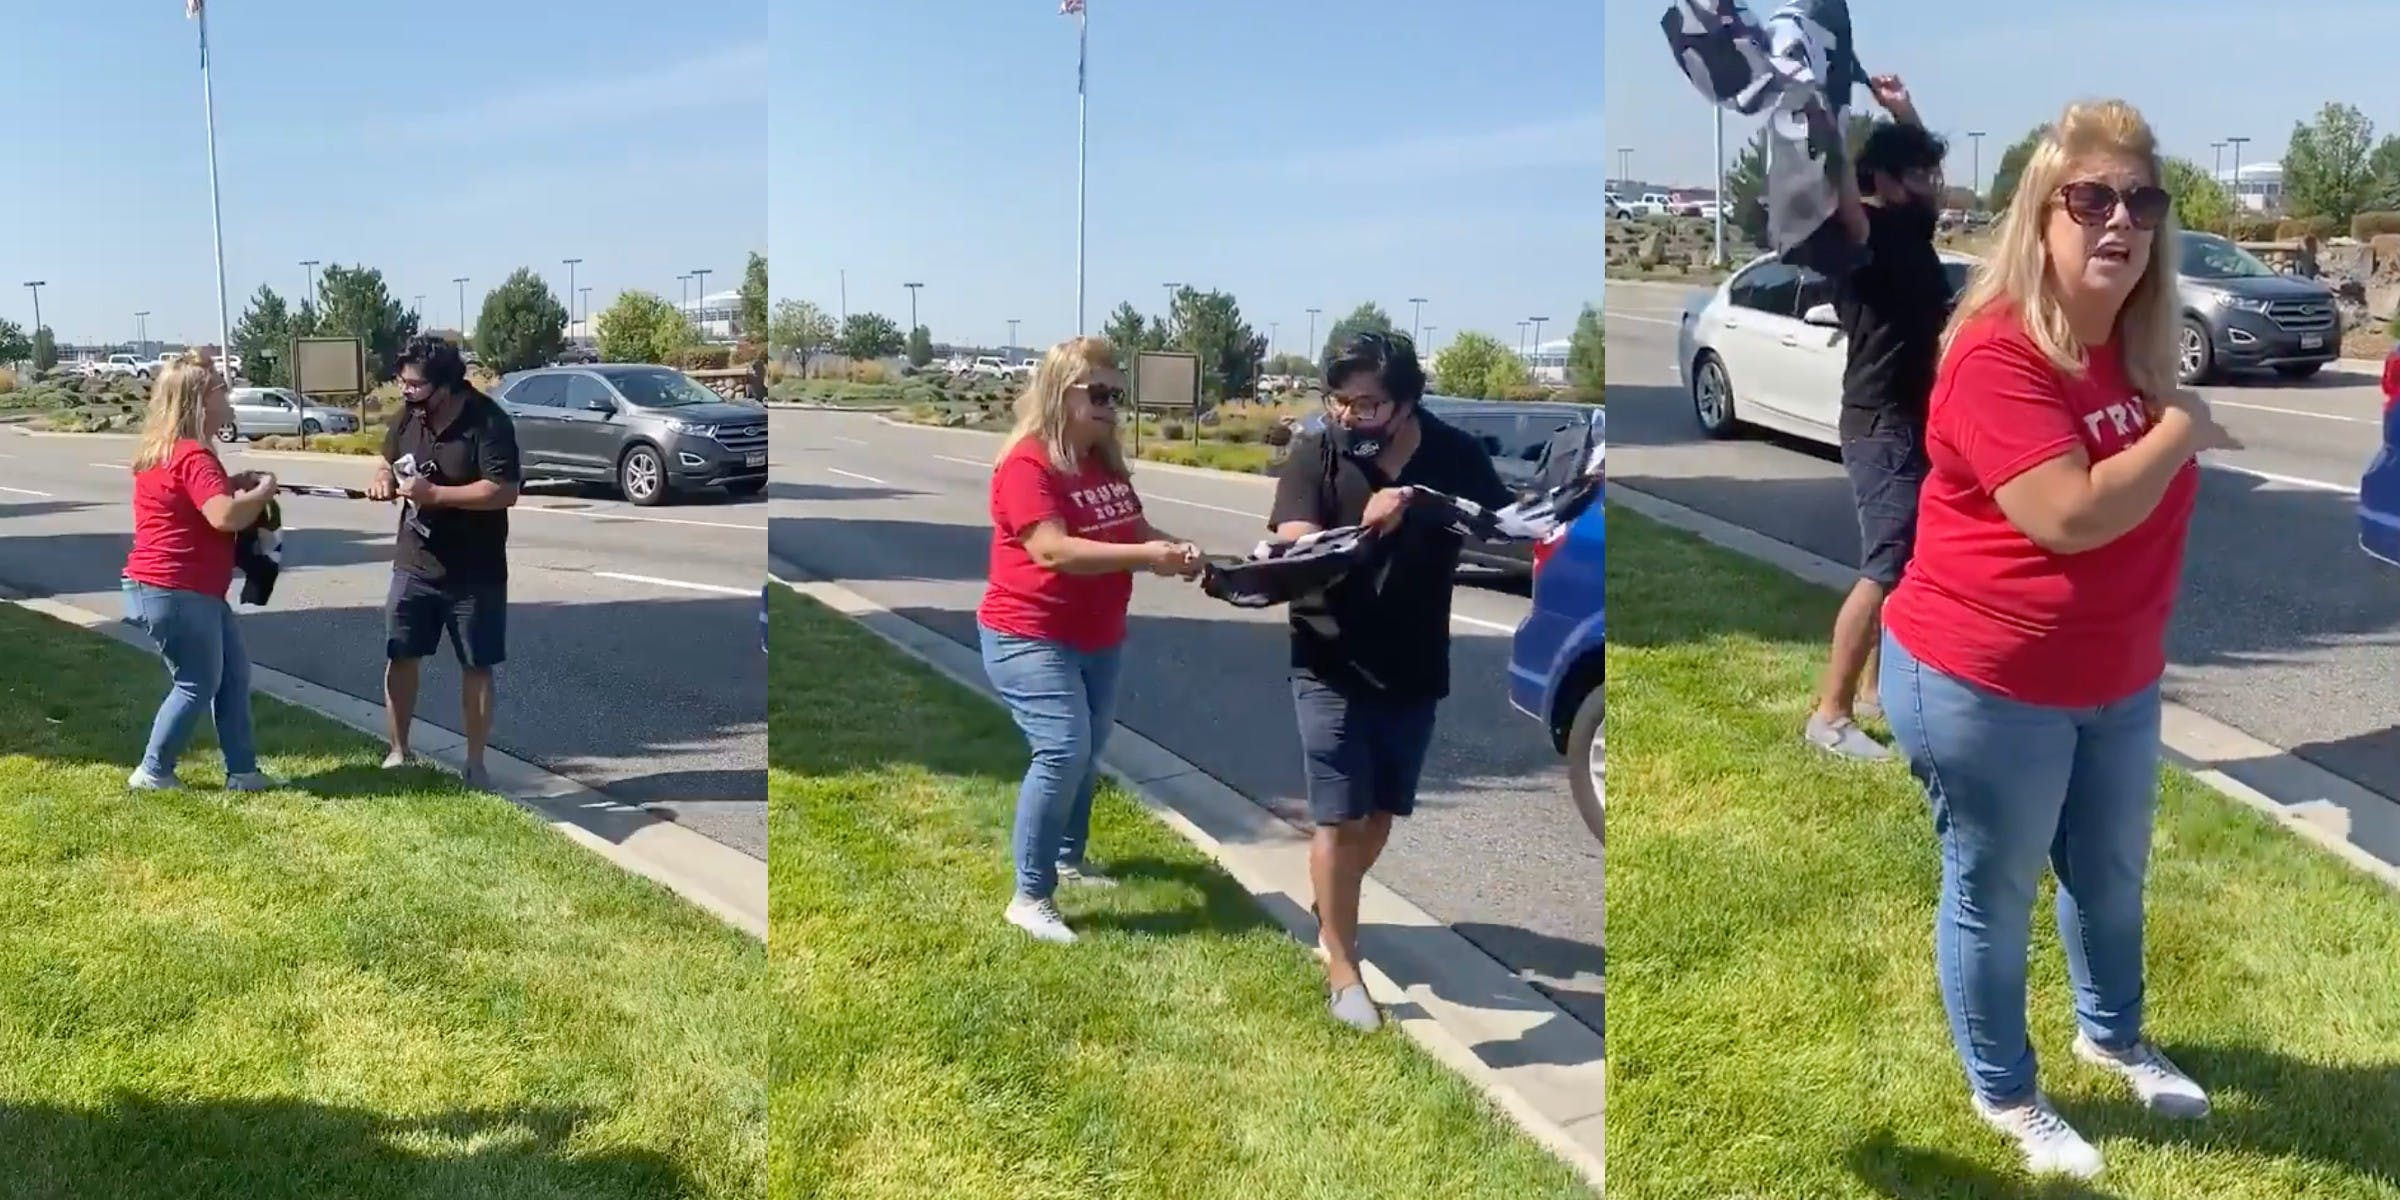 A woman tried to snatch a BLM flag from a man